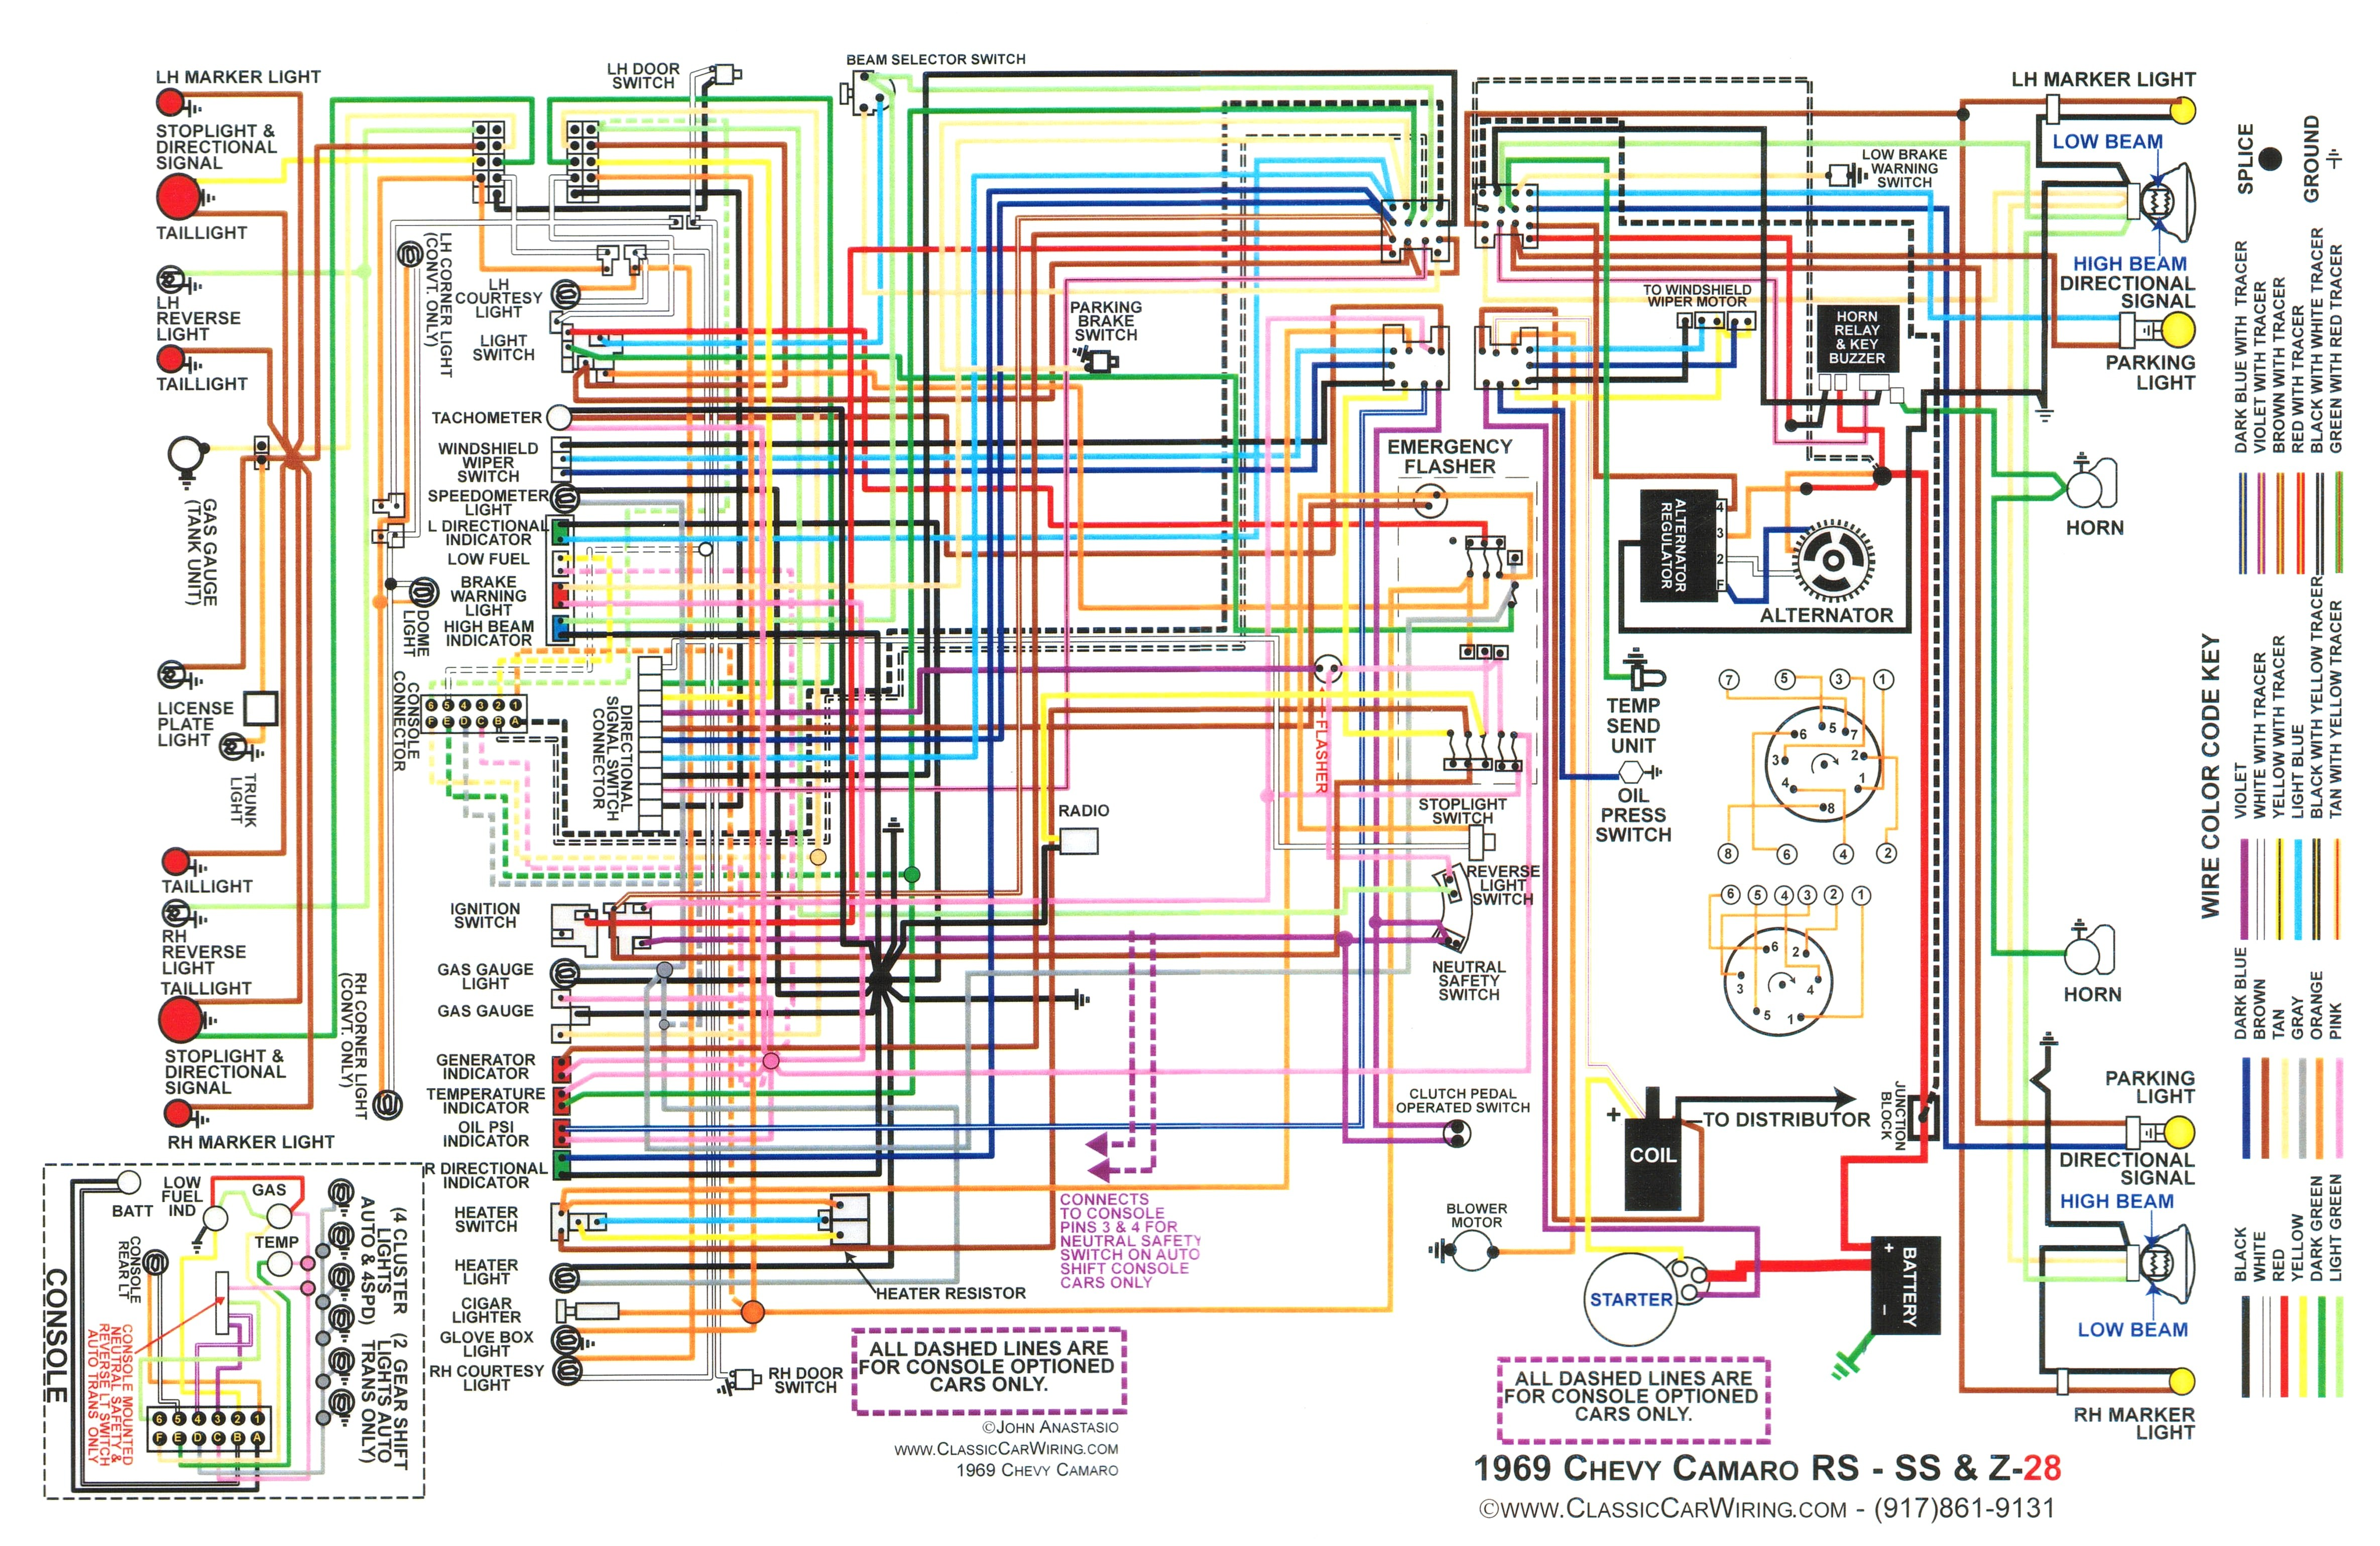 1972 Pontiac Trans Am Wiring Diagram Library 86 Firebird A C Wire Camaro Harness Auto Electrical 69 Ac